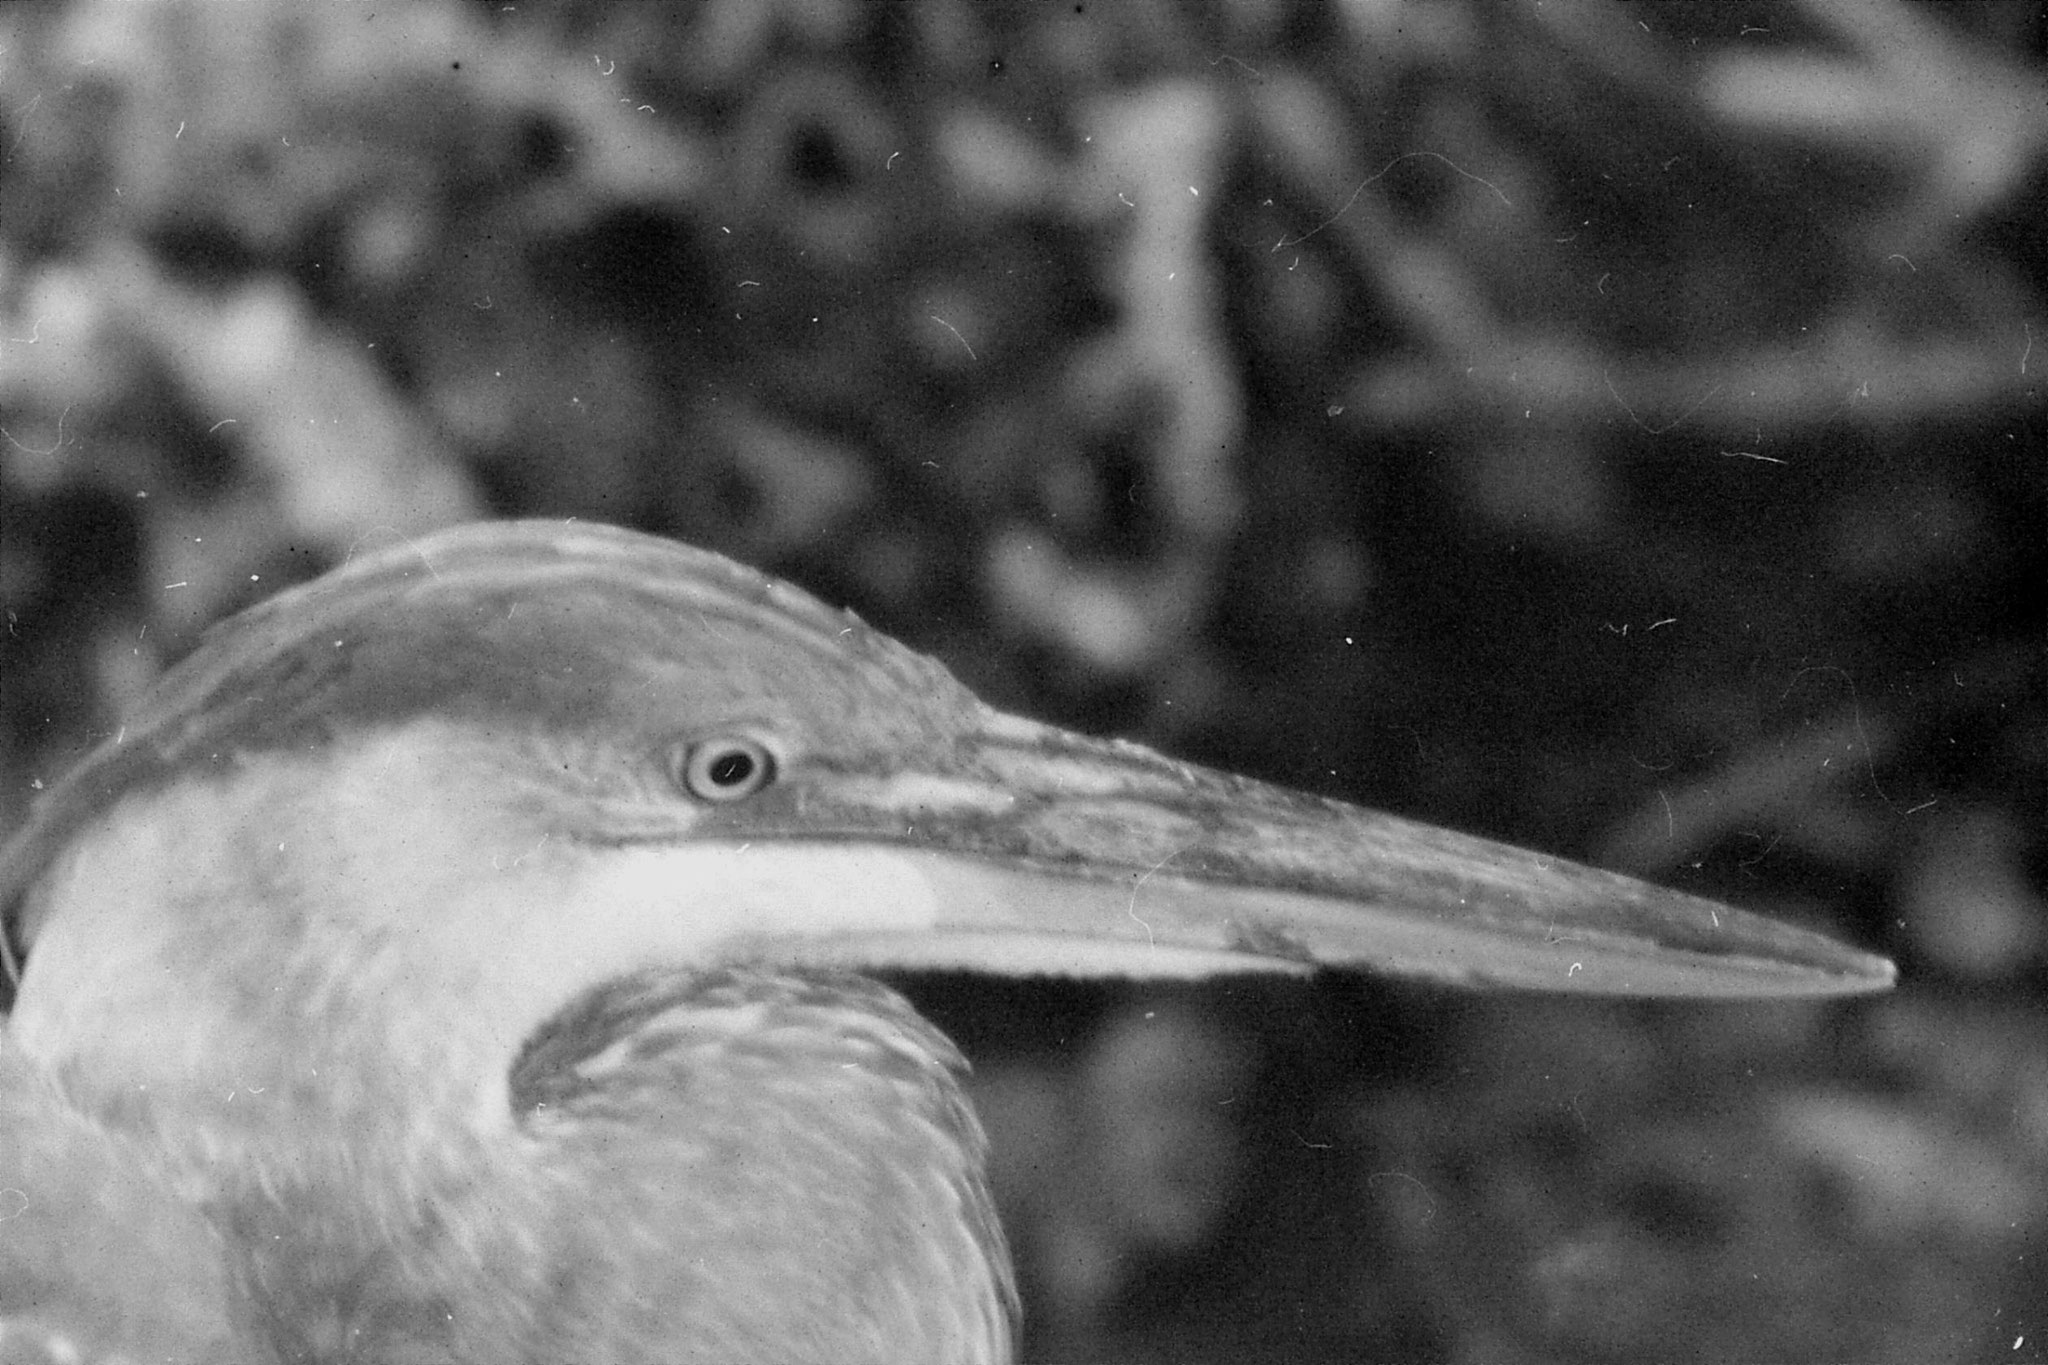 21/12/1990: 2: Everglades, Blue Heron